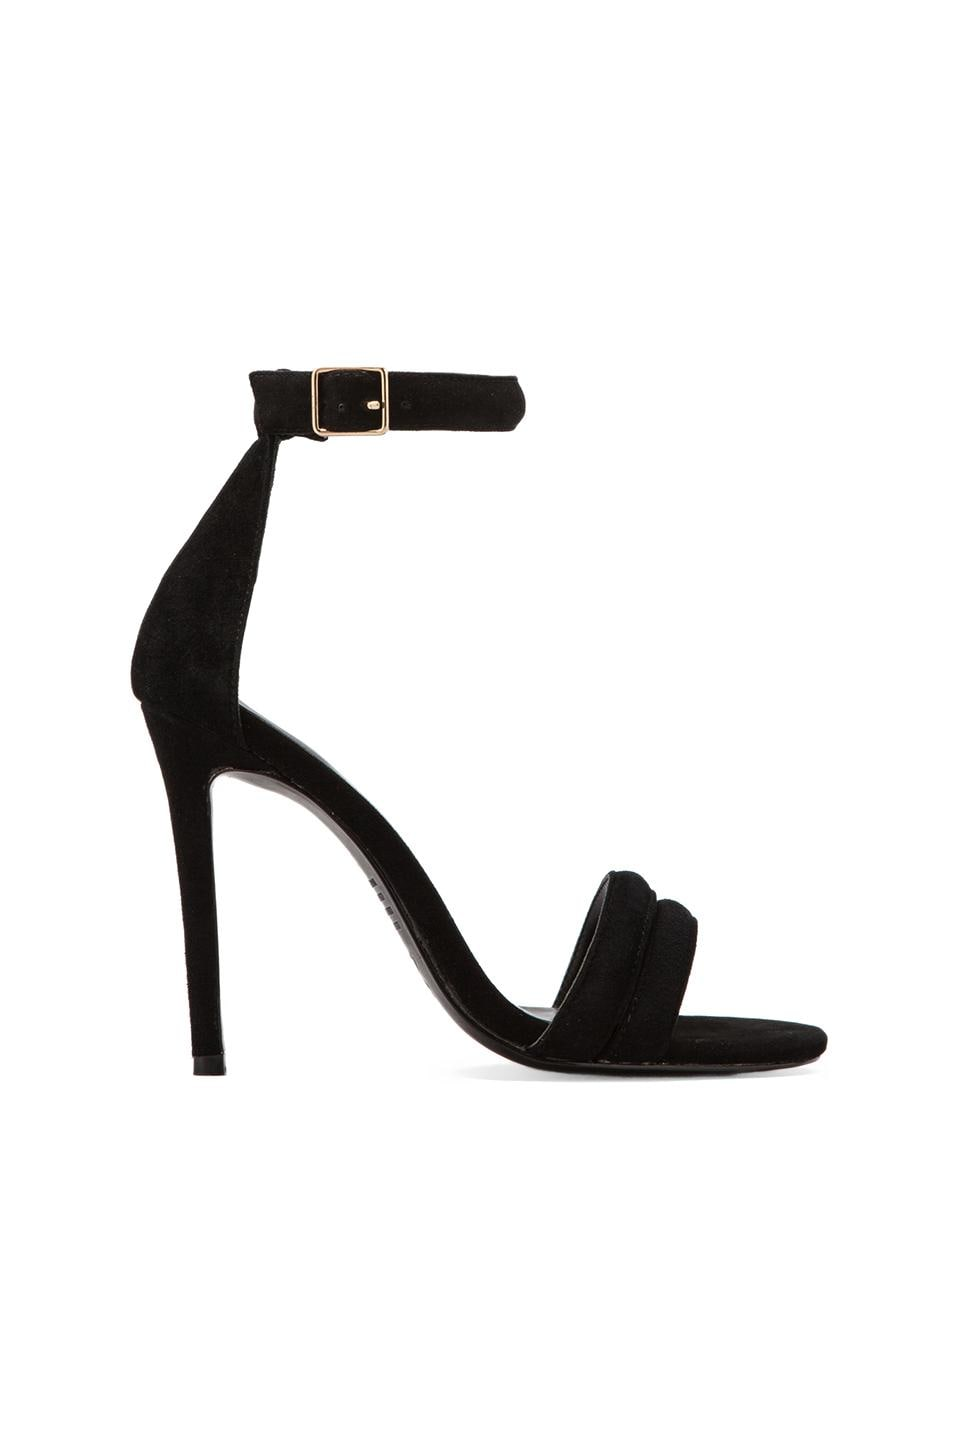 NICHOLAS Jocelyn Pump in Black Kid Suede